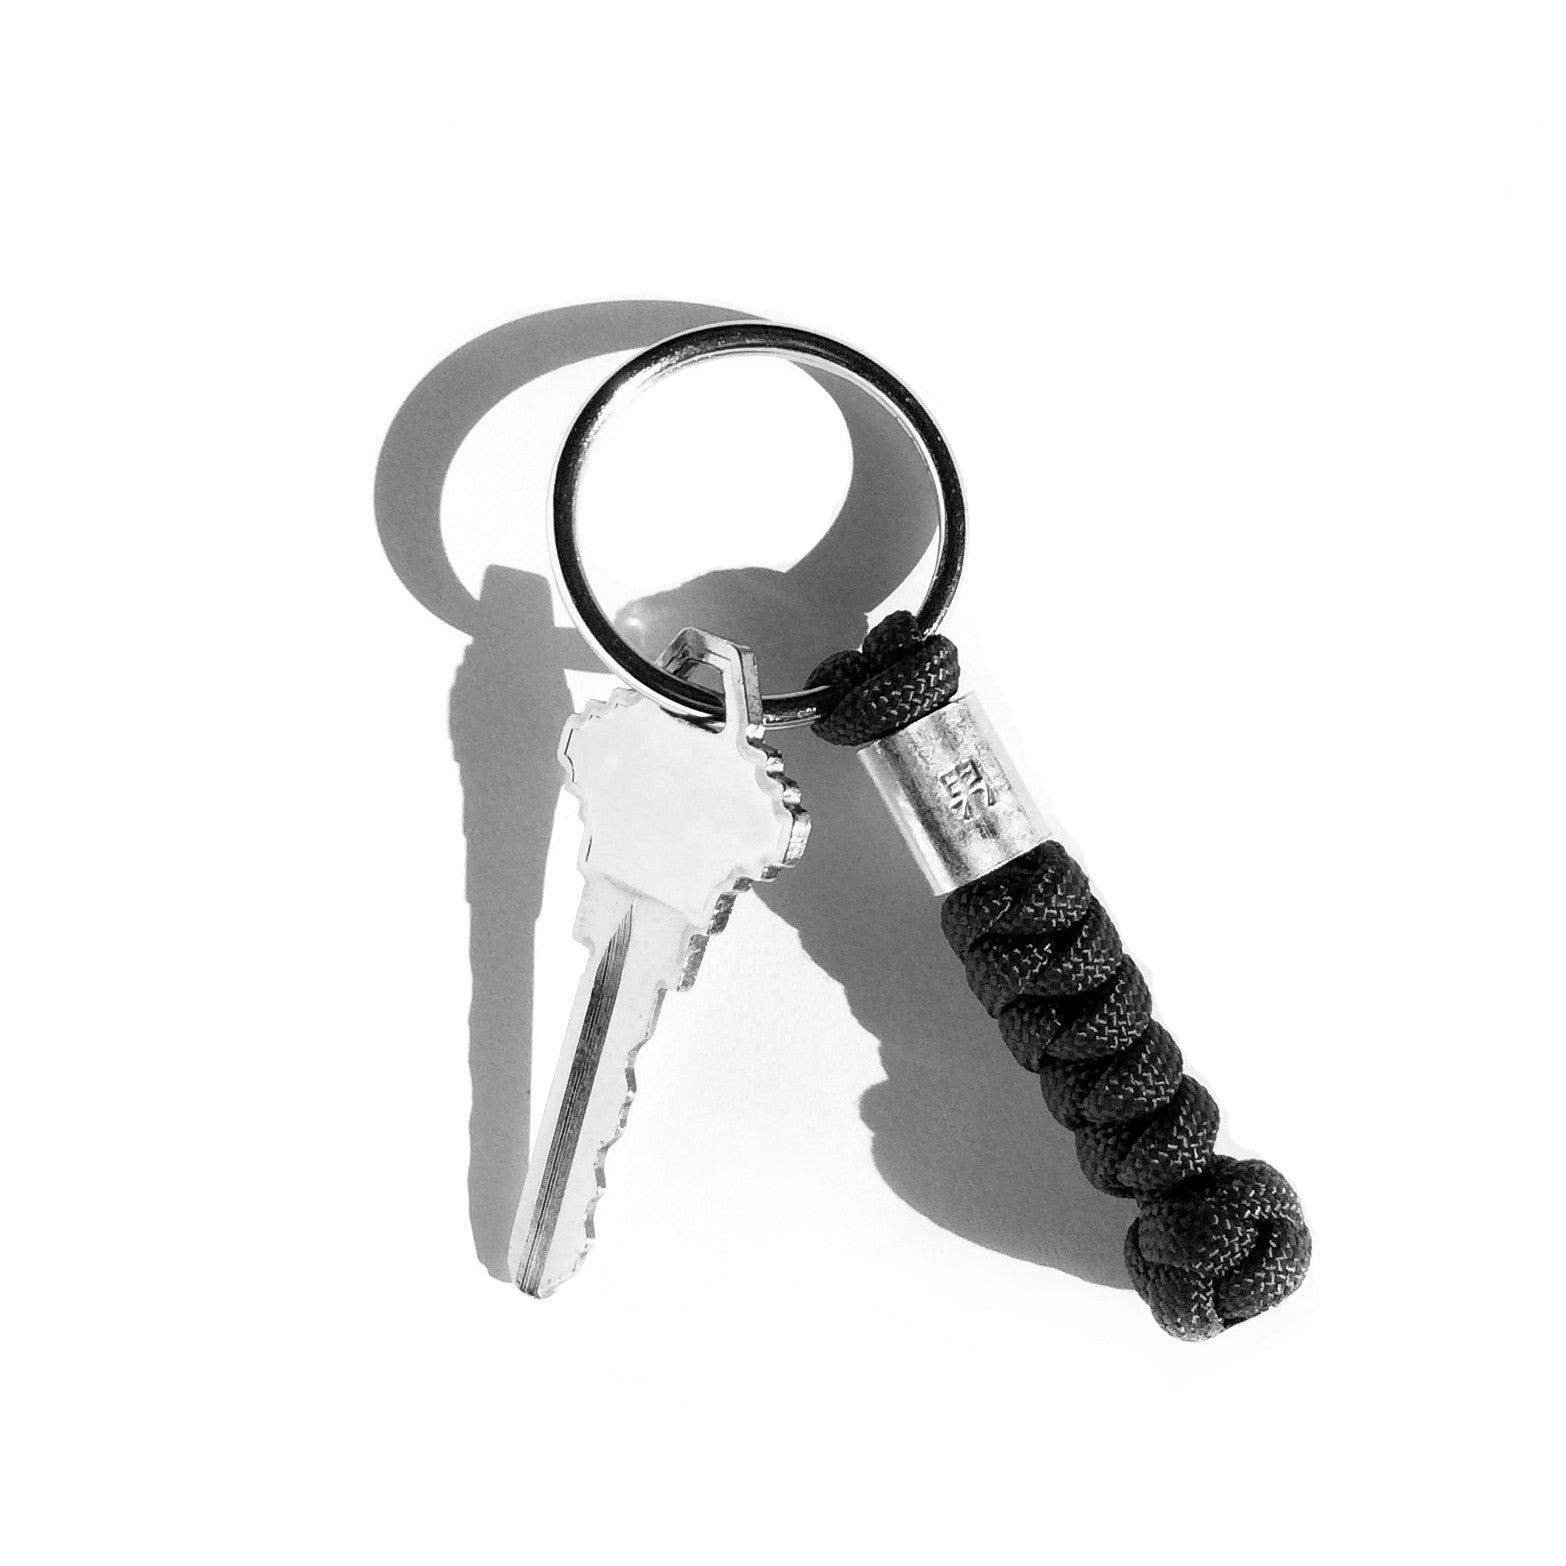 accessoires homme mens Keychain montreal canada